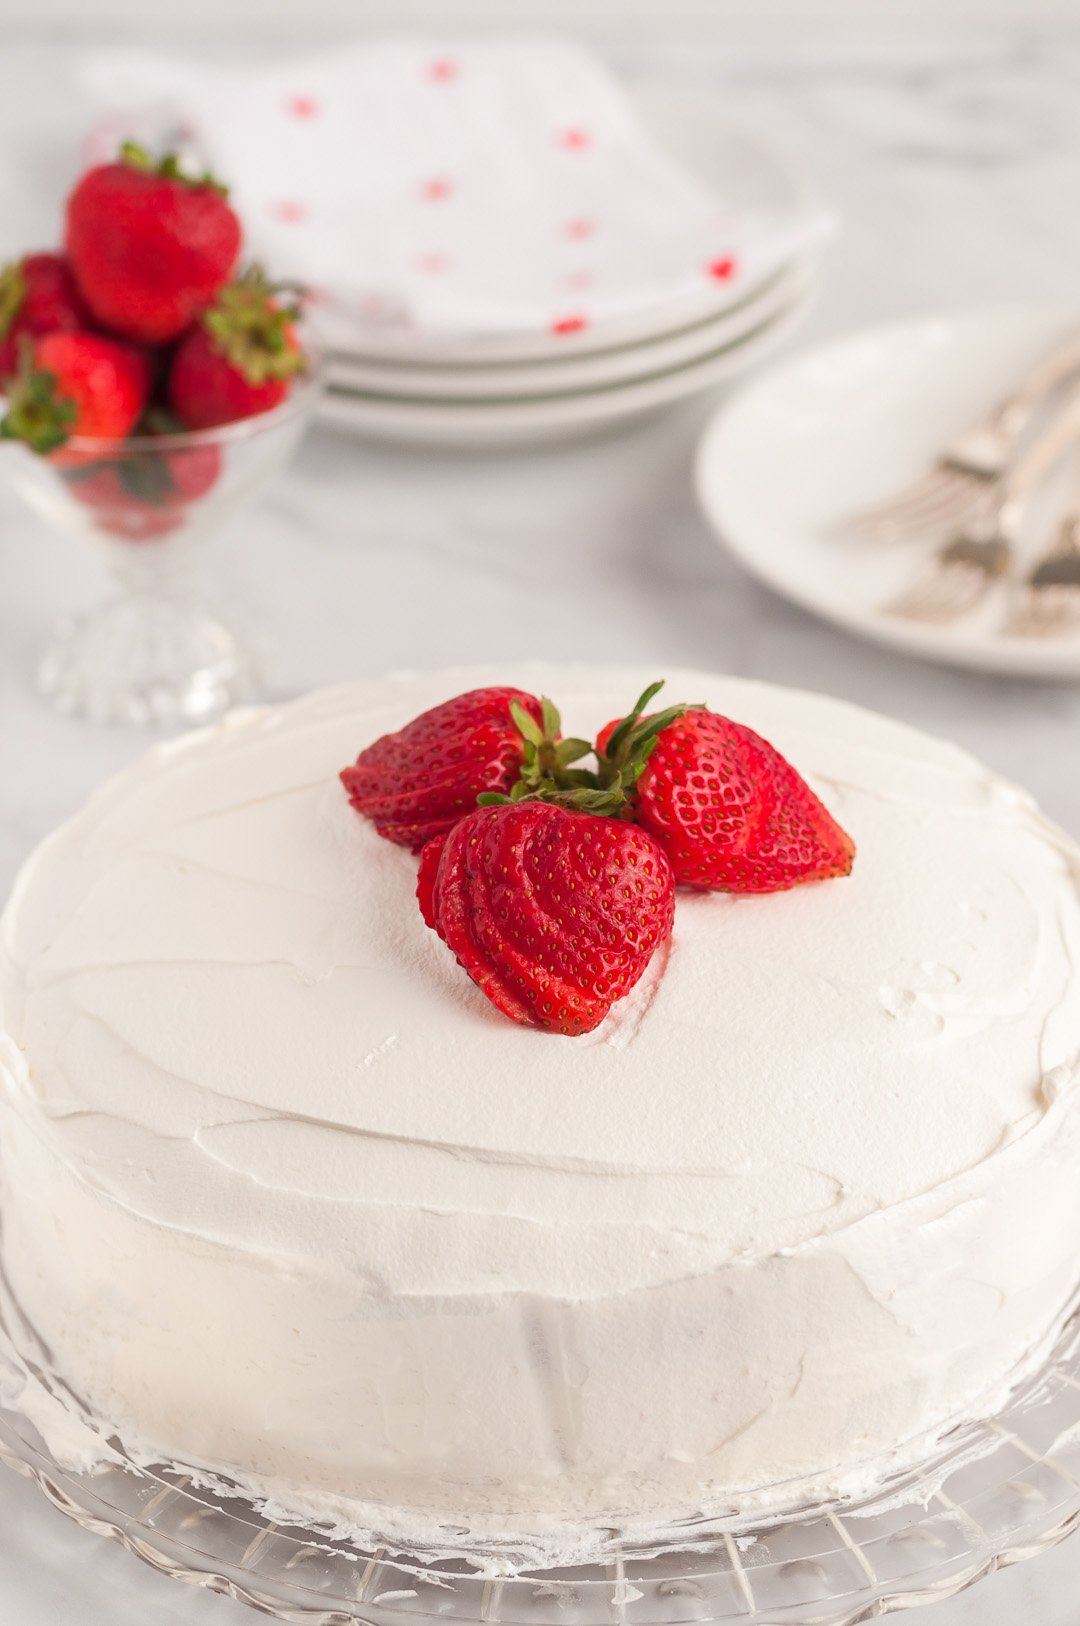 frosted cake topped with sliced strawberries